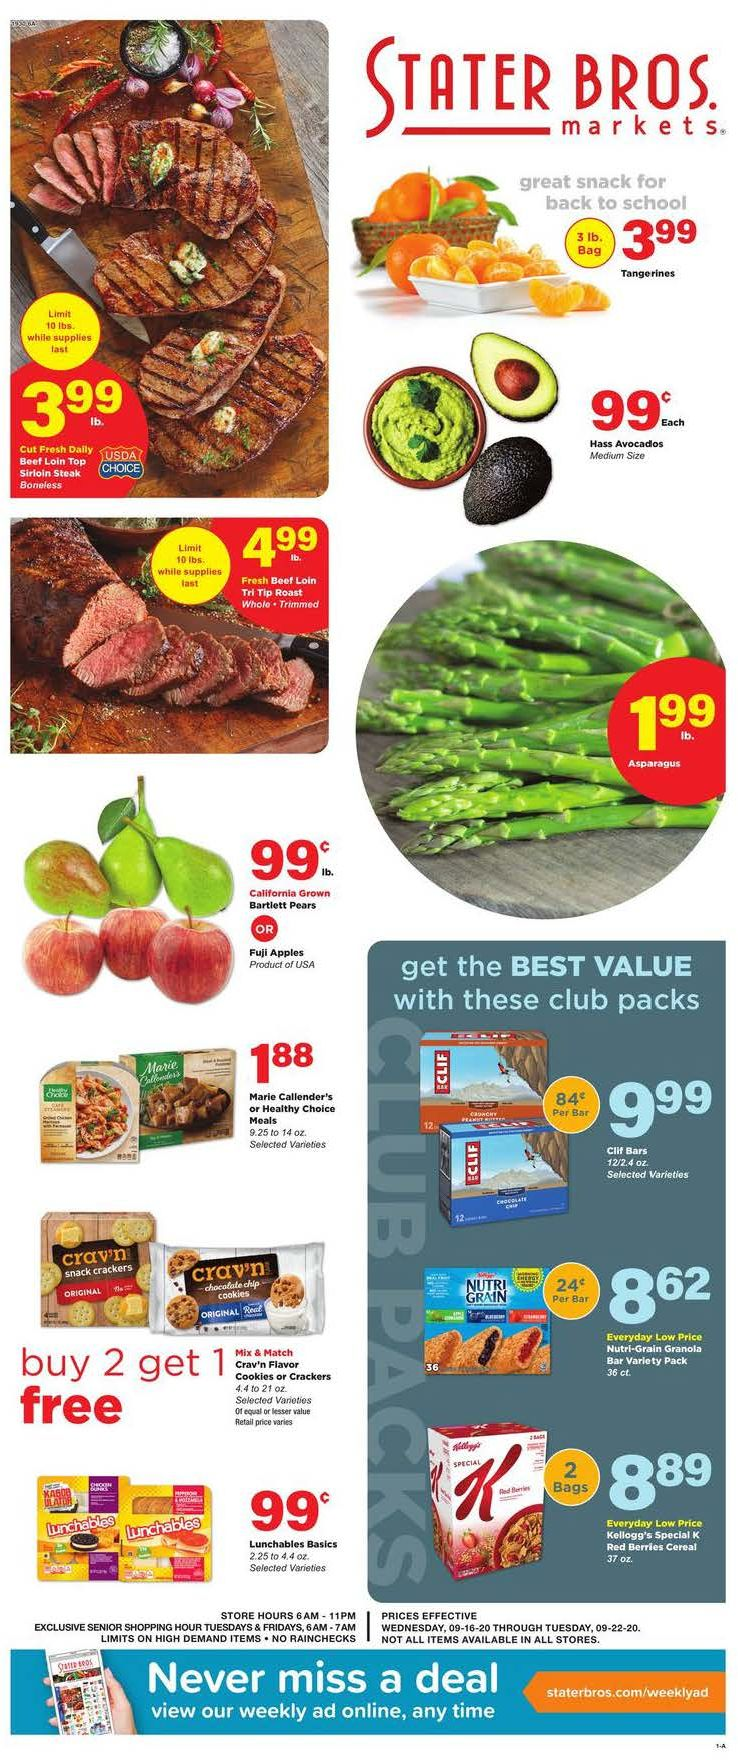 Stater Bros Weekly September Ad valid from Sep 16 – 22, 2020